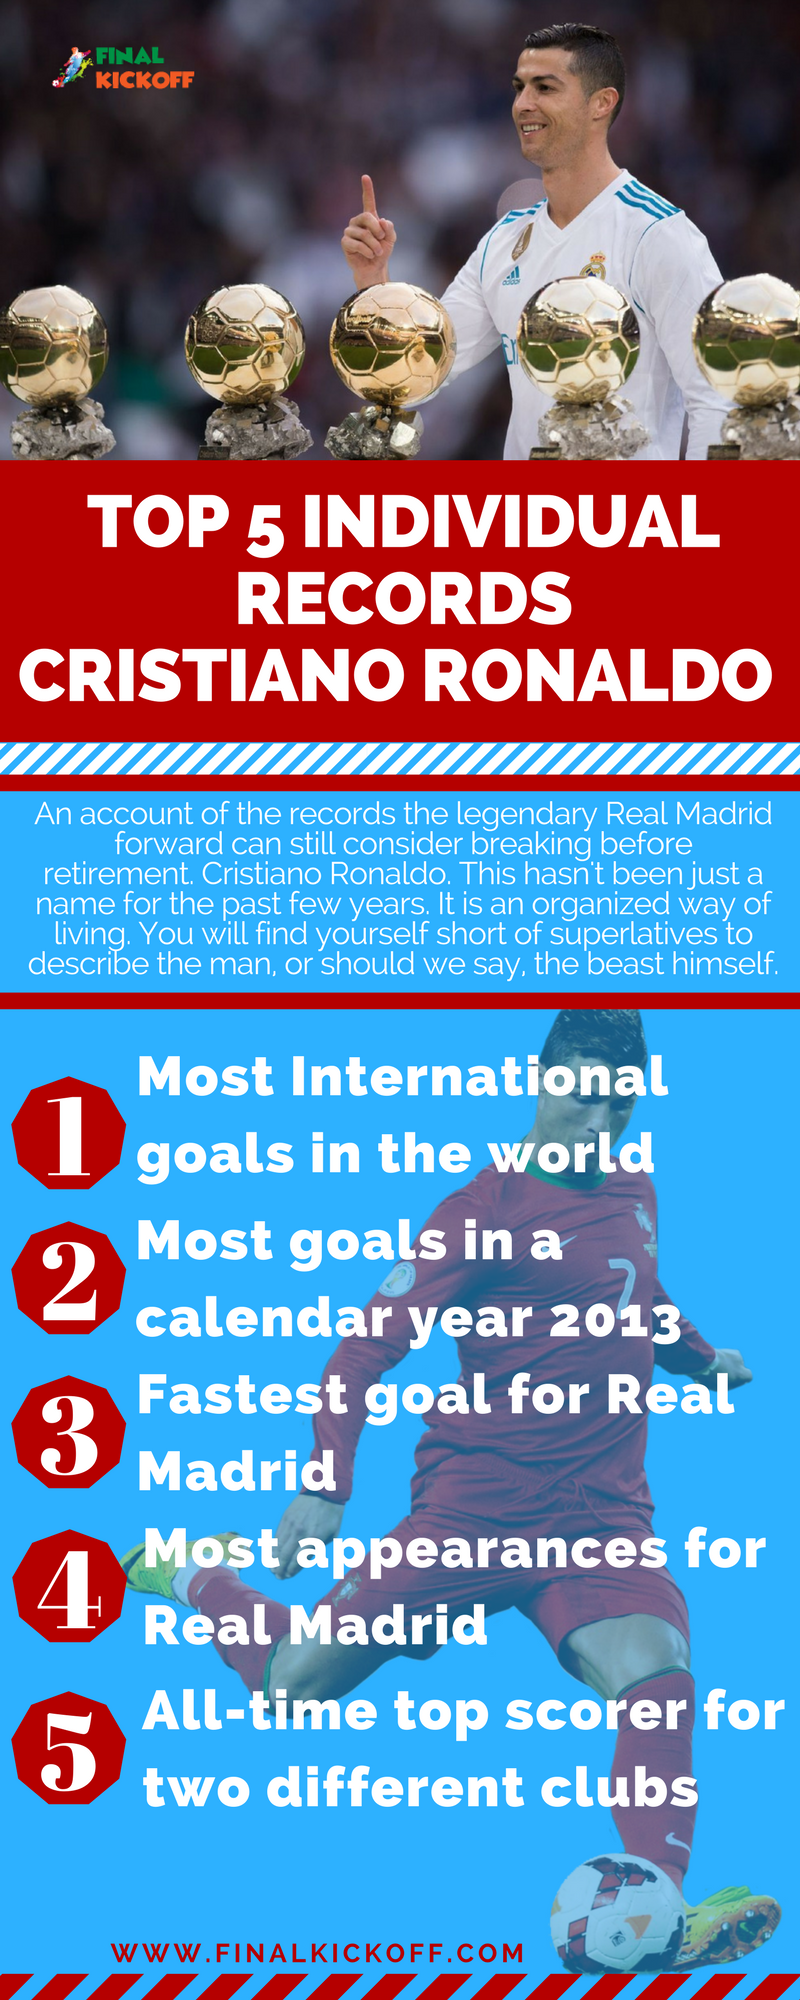 Top 5 individual records Cristiano Ronaldo is yet to break  Most International goals in the world Most goals in a calendar year 2013 Fastest goal for Real Madrid Most appearances for Real Madrid All-time top scorer for two different clubs